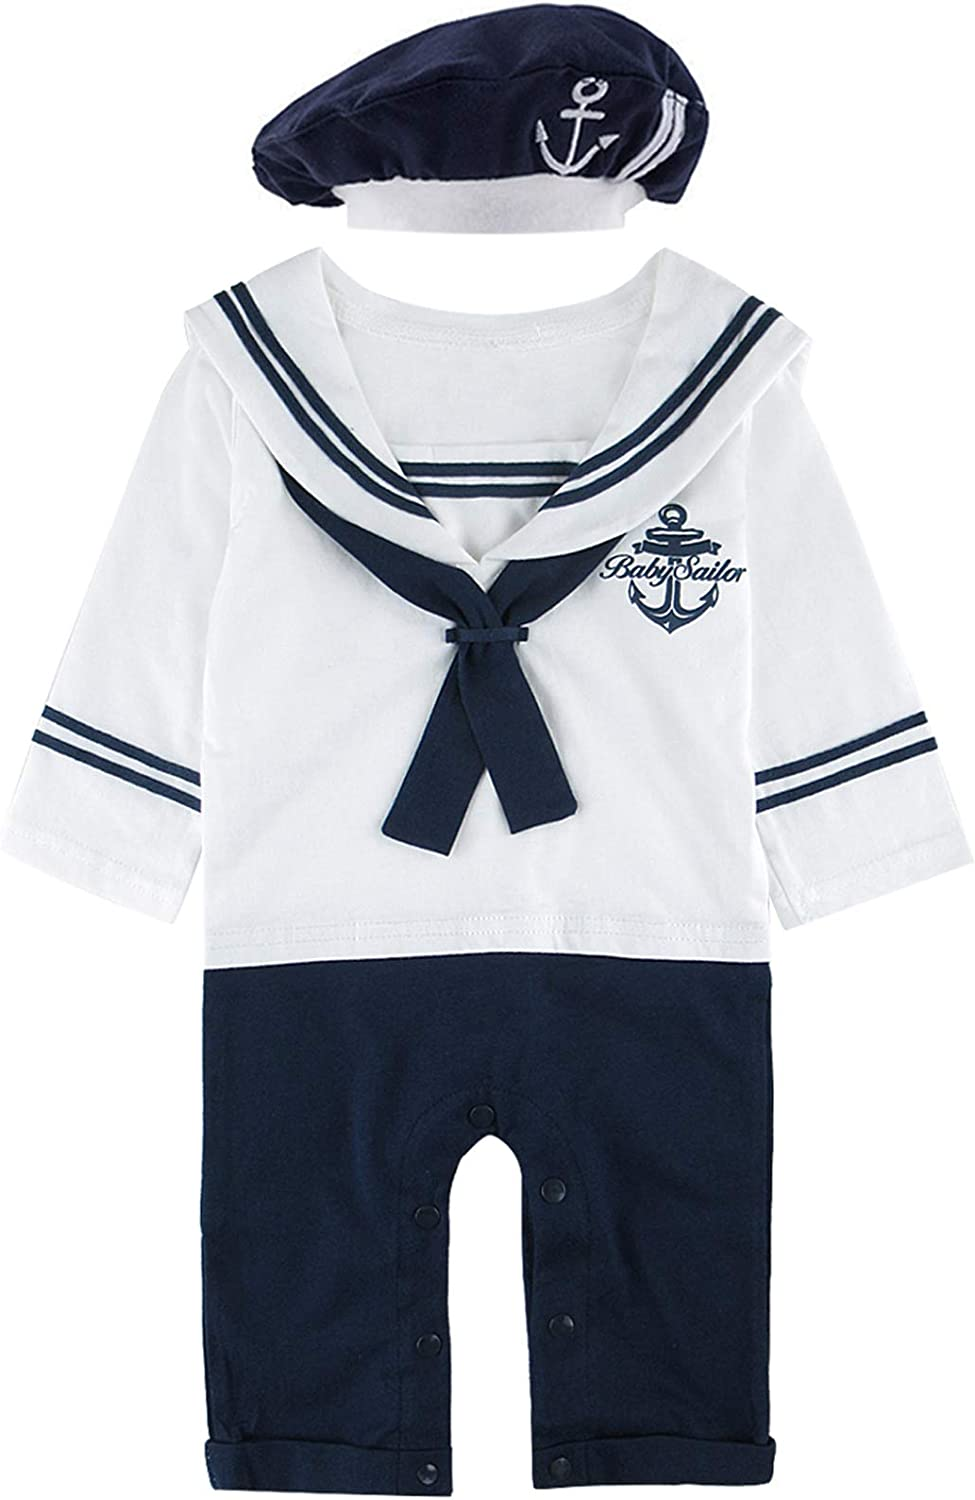 COSLAND Baby Sailor Outfit Nautical Boy Costume